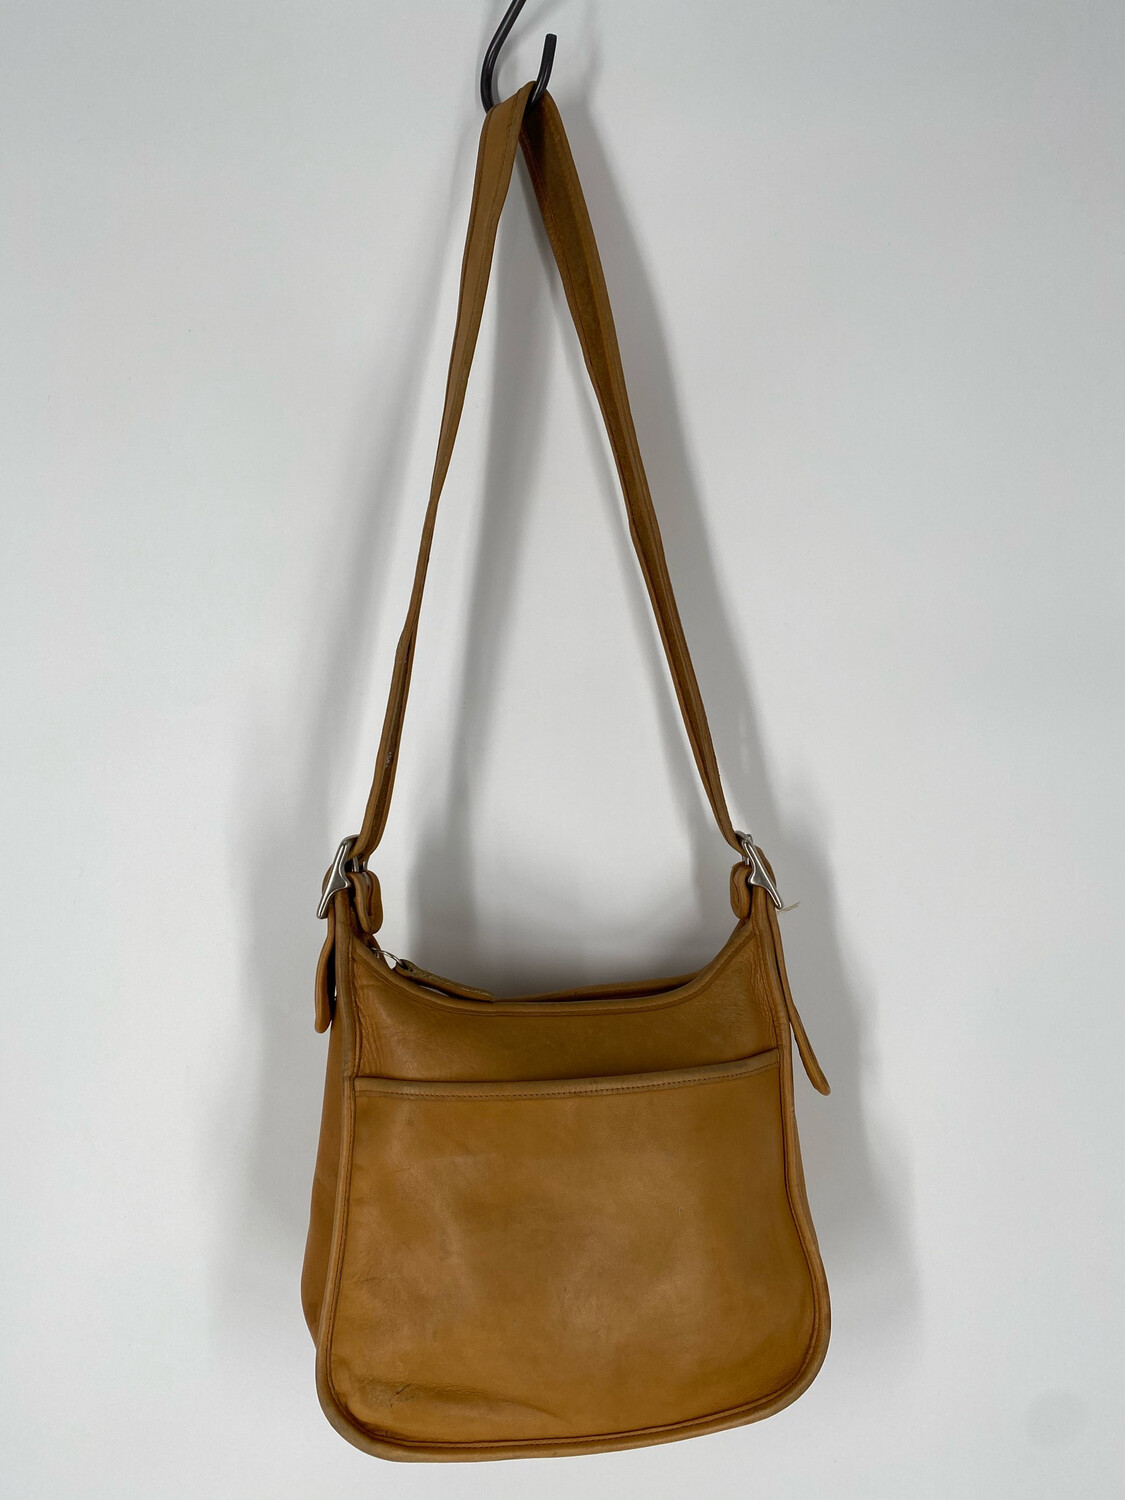 Vintage Tan Coach Shoulder Leather Bag